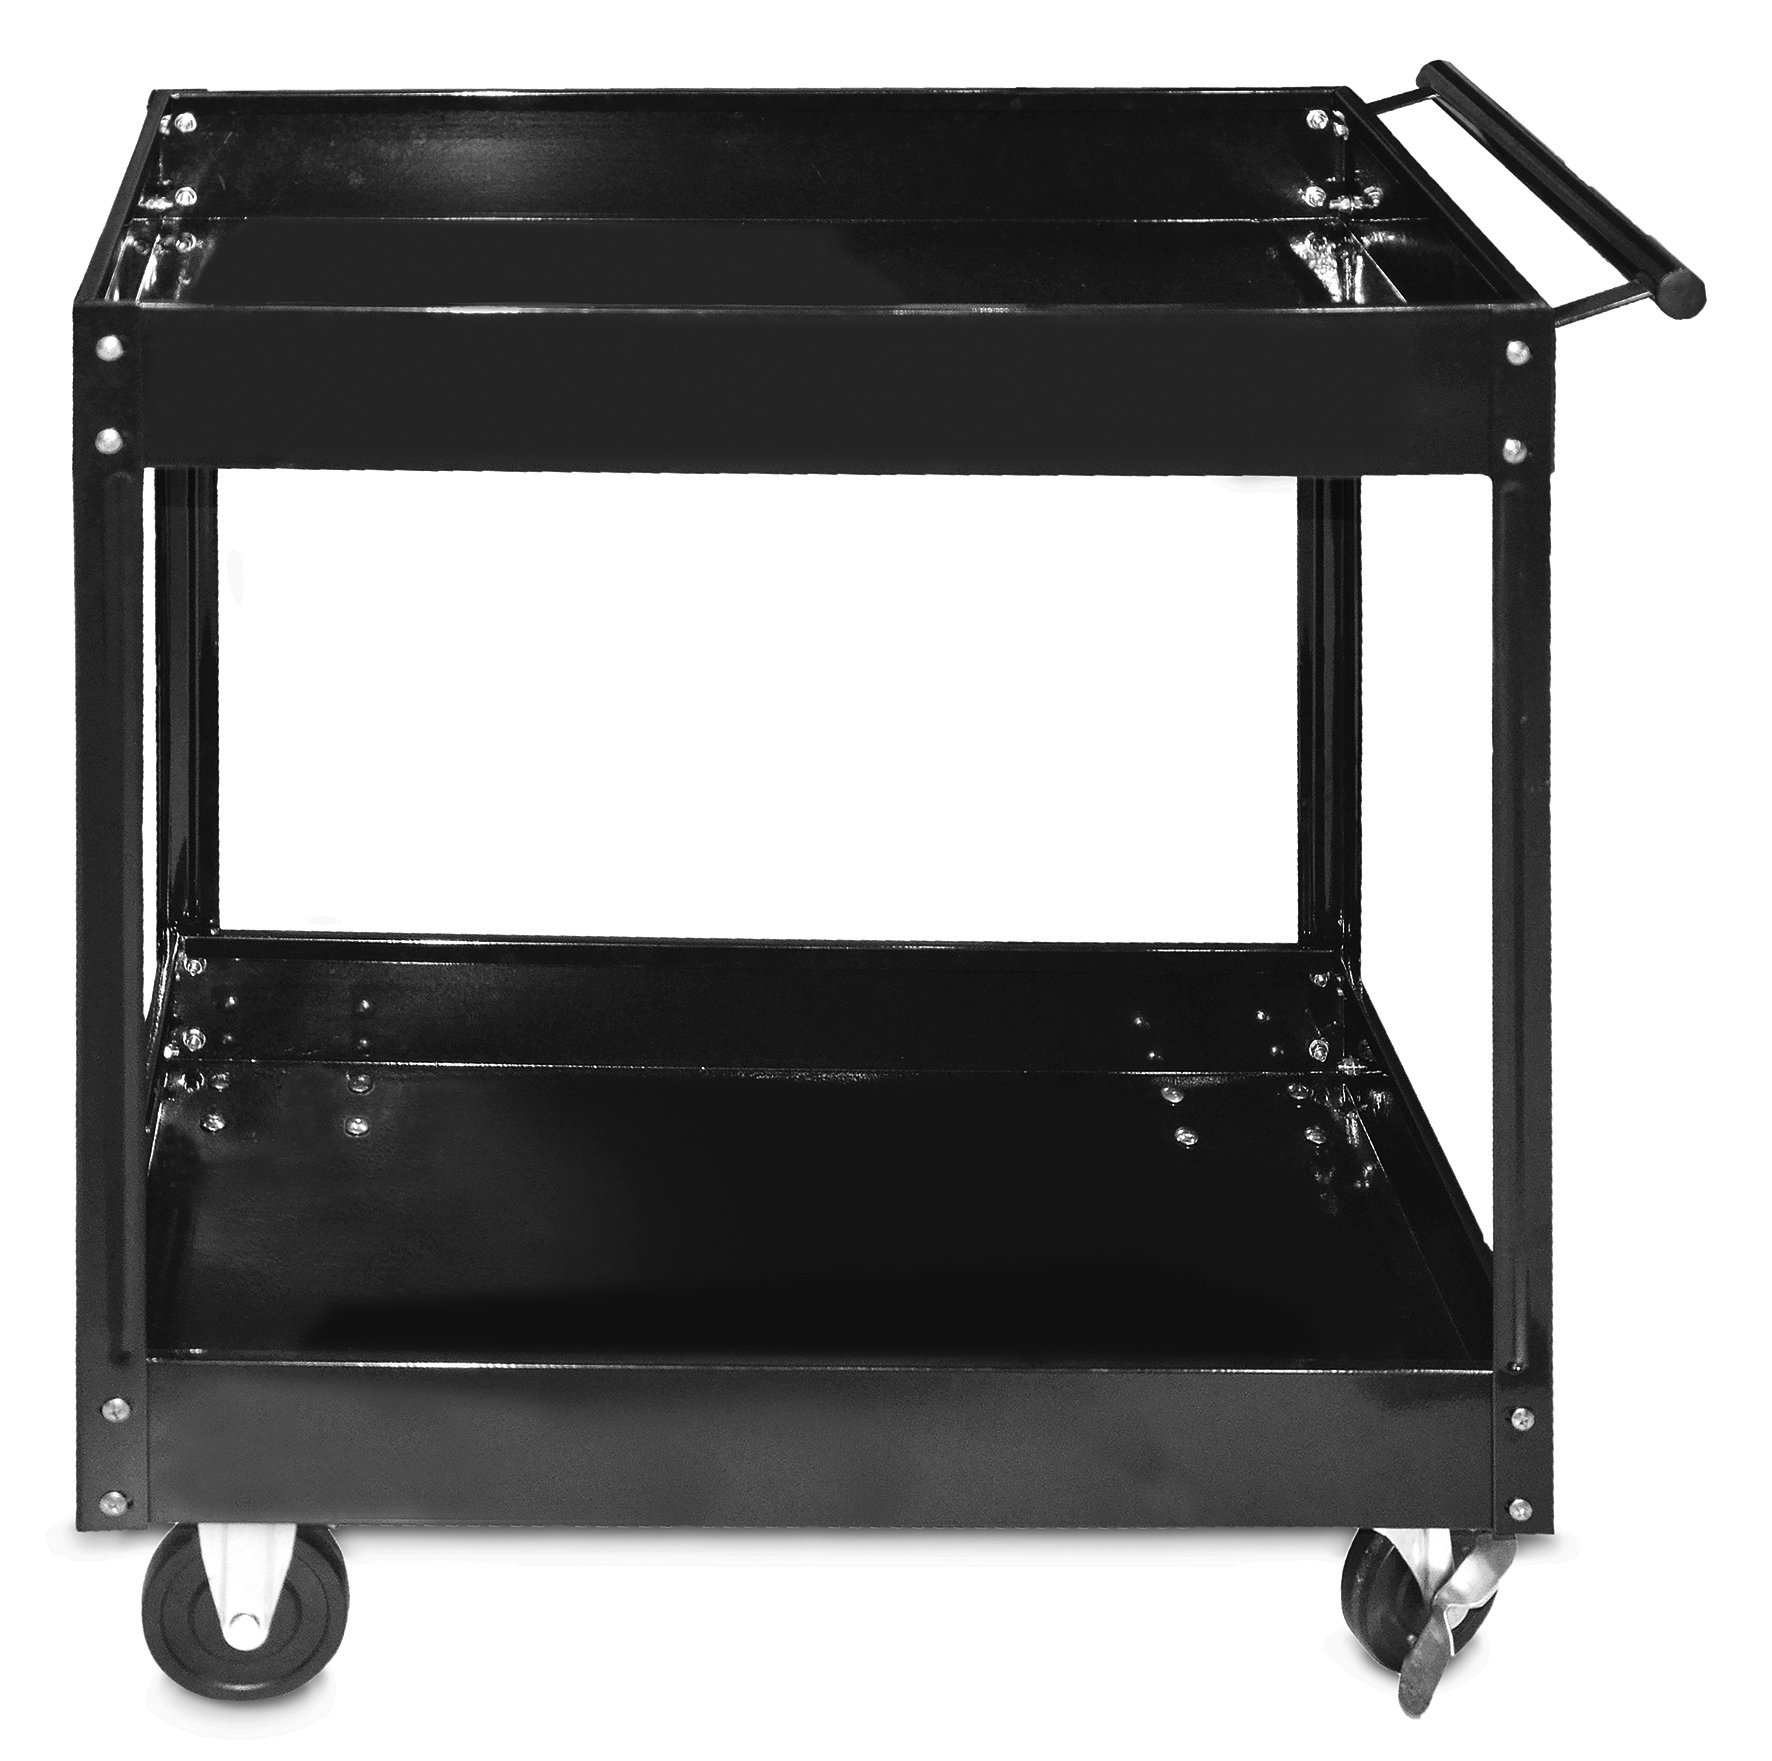 STEEL CORE 300 Lb 2-Shelf Steel Service Tool Cart, 30'' x 16''